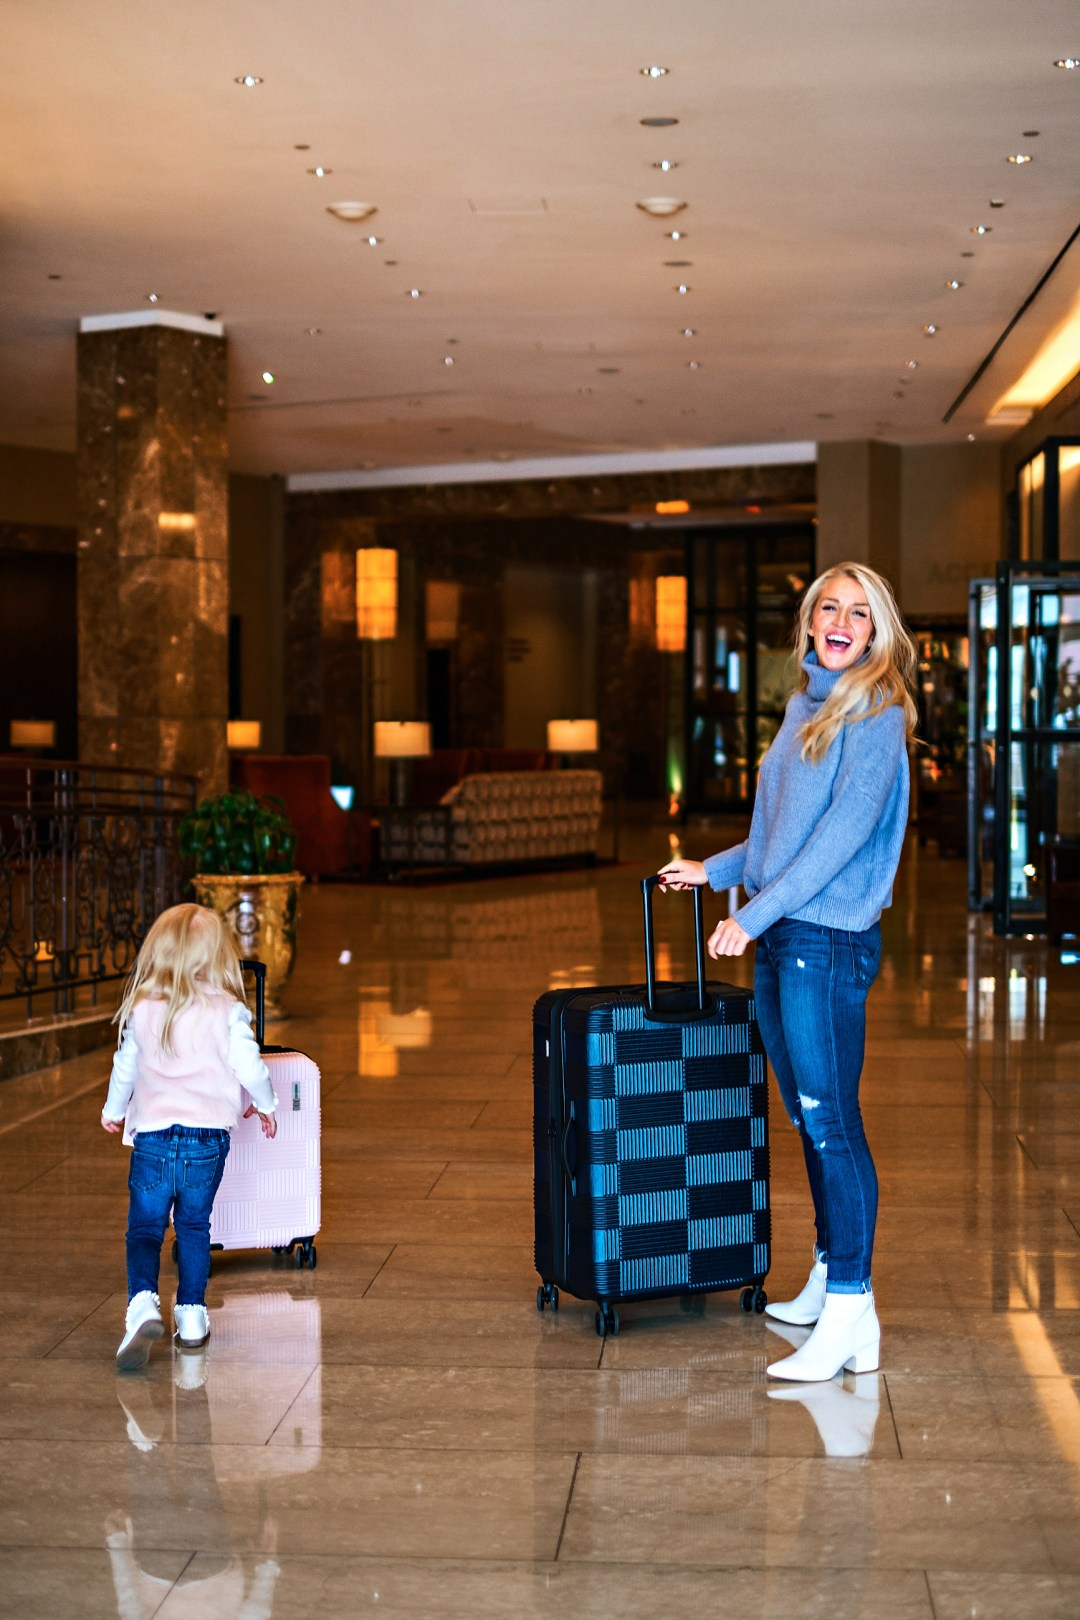 Heading to Boston soon? Popular Atlanta Blogger Happily Hughes is sharing where to stay, eat, see and do with her Family Boston Travel Guide here!